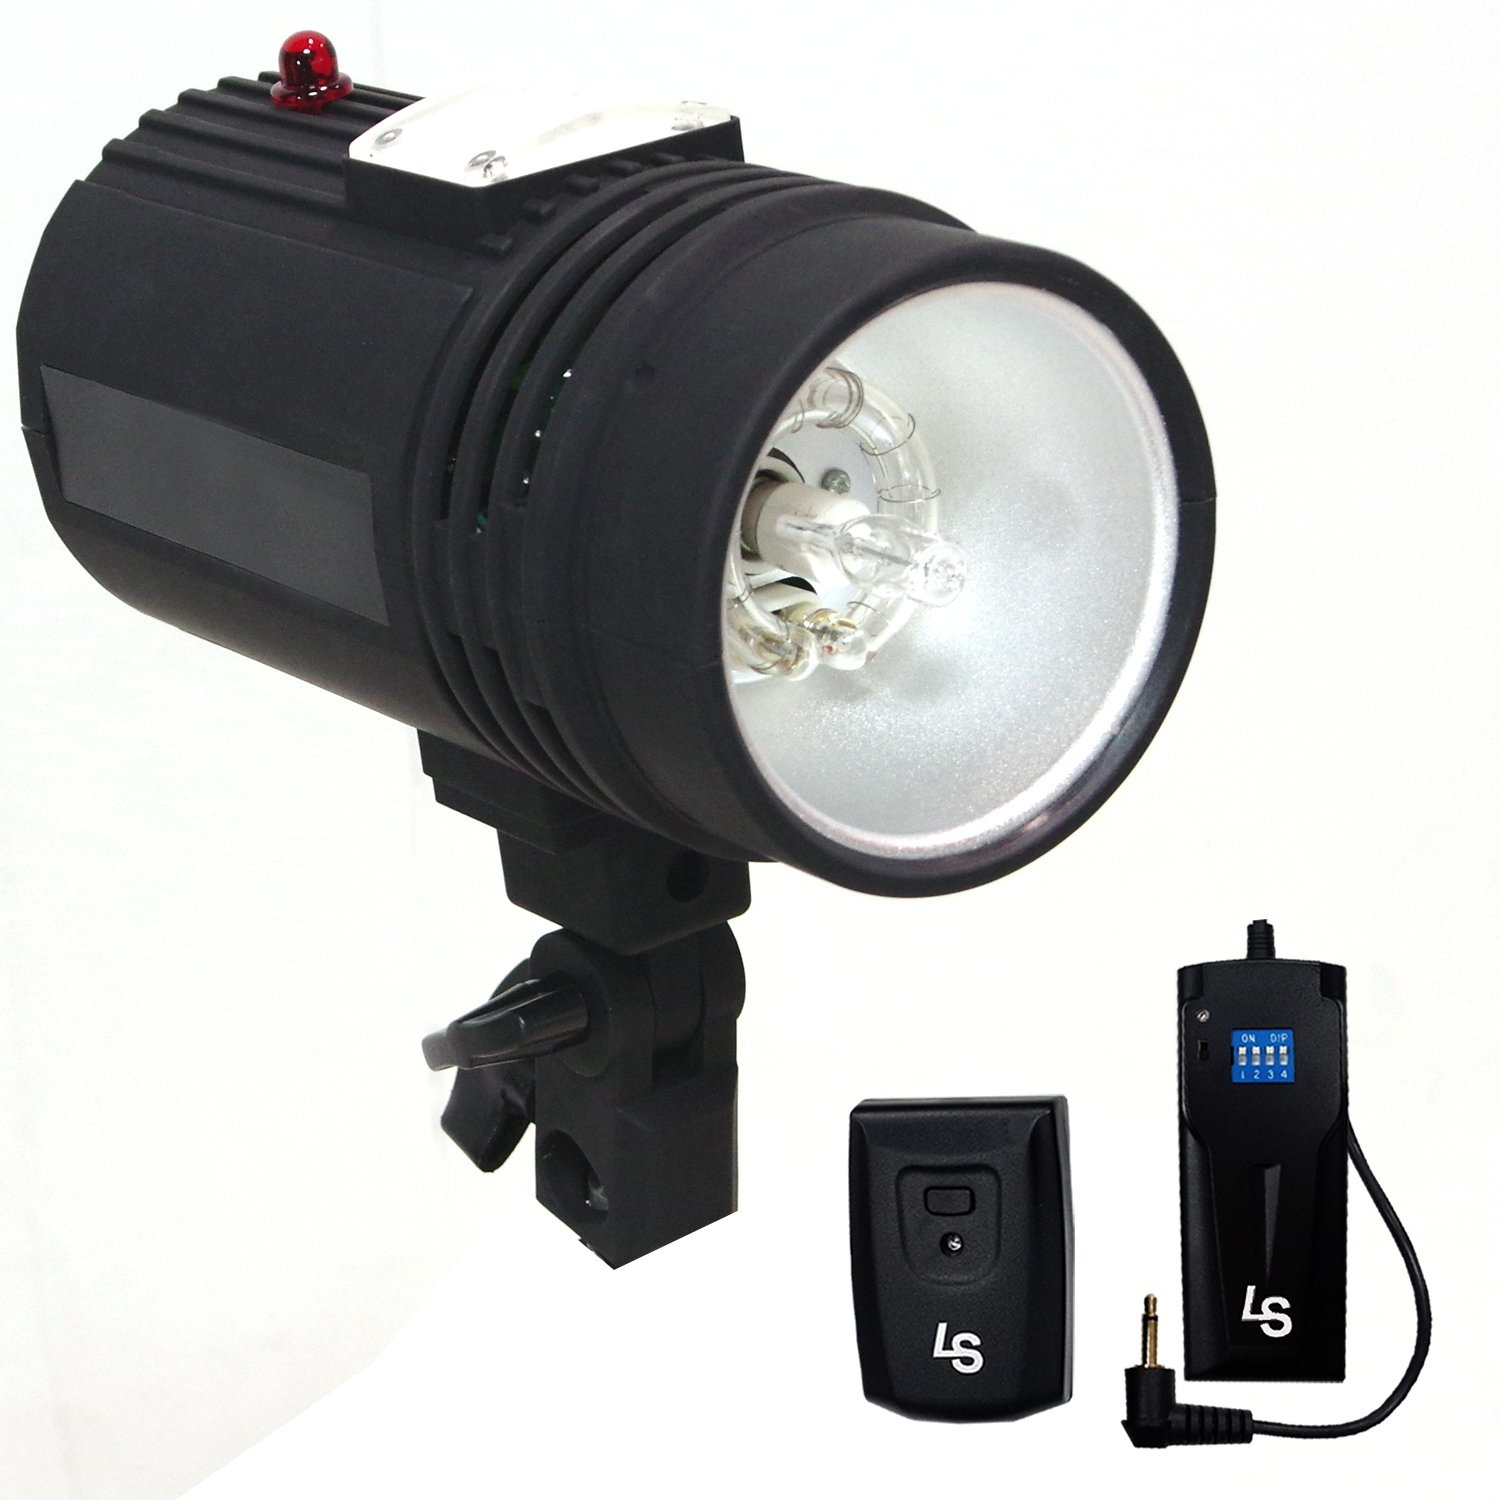 LS Photography Flash Strobe Light 200 W, Sync Cord, Fuse, Test Button, Umbrella Input, Mount on Light Stand with , Radio Sync Transmitter & Receiver Professional Photography Use, Photo Studio, LGG626